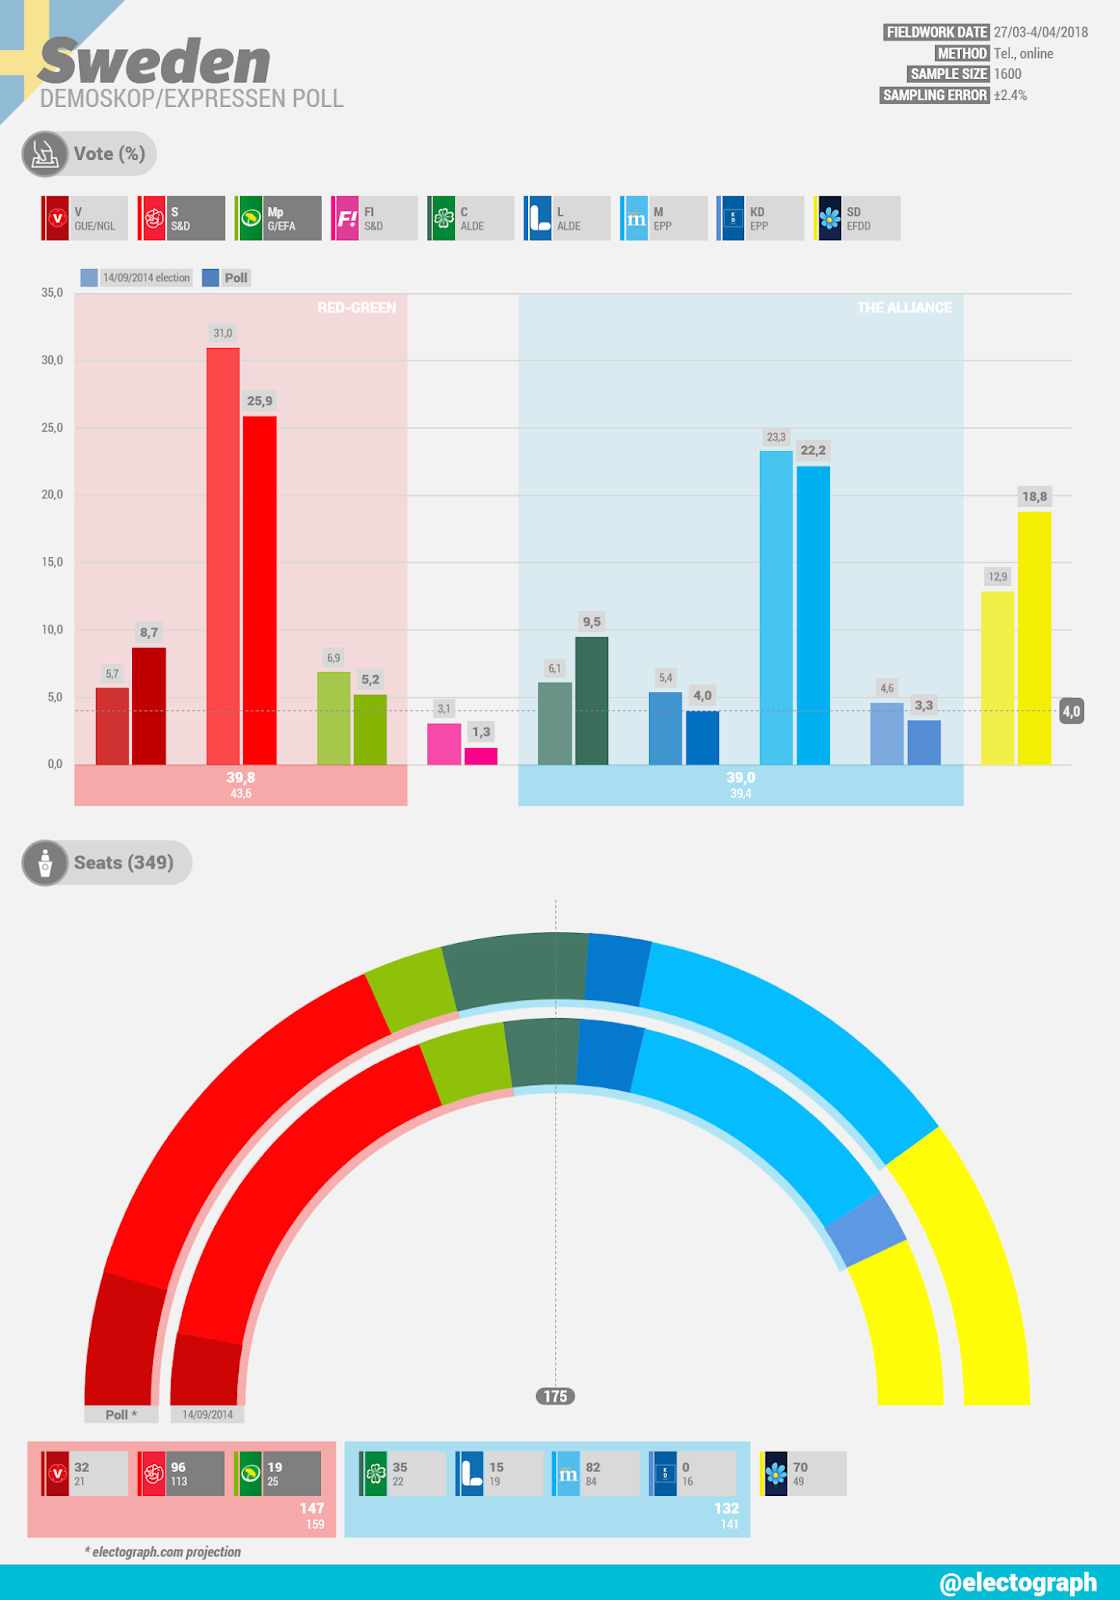 SWEDEN Demoskop poll chart for Expressen, April 2018